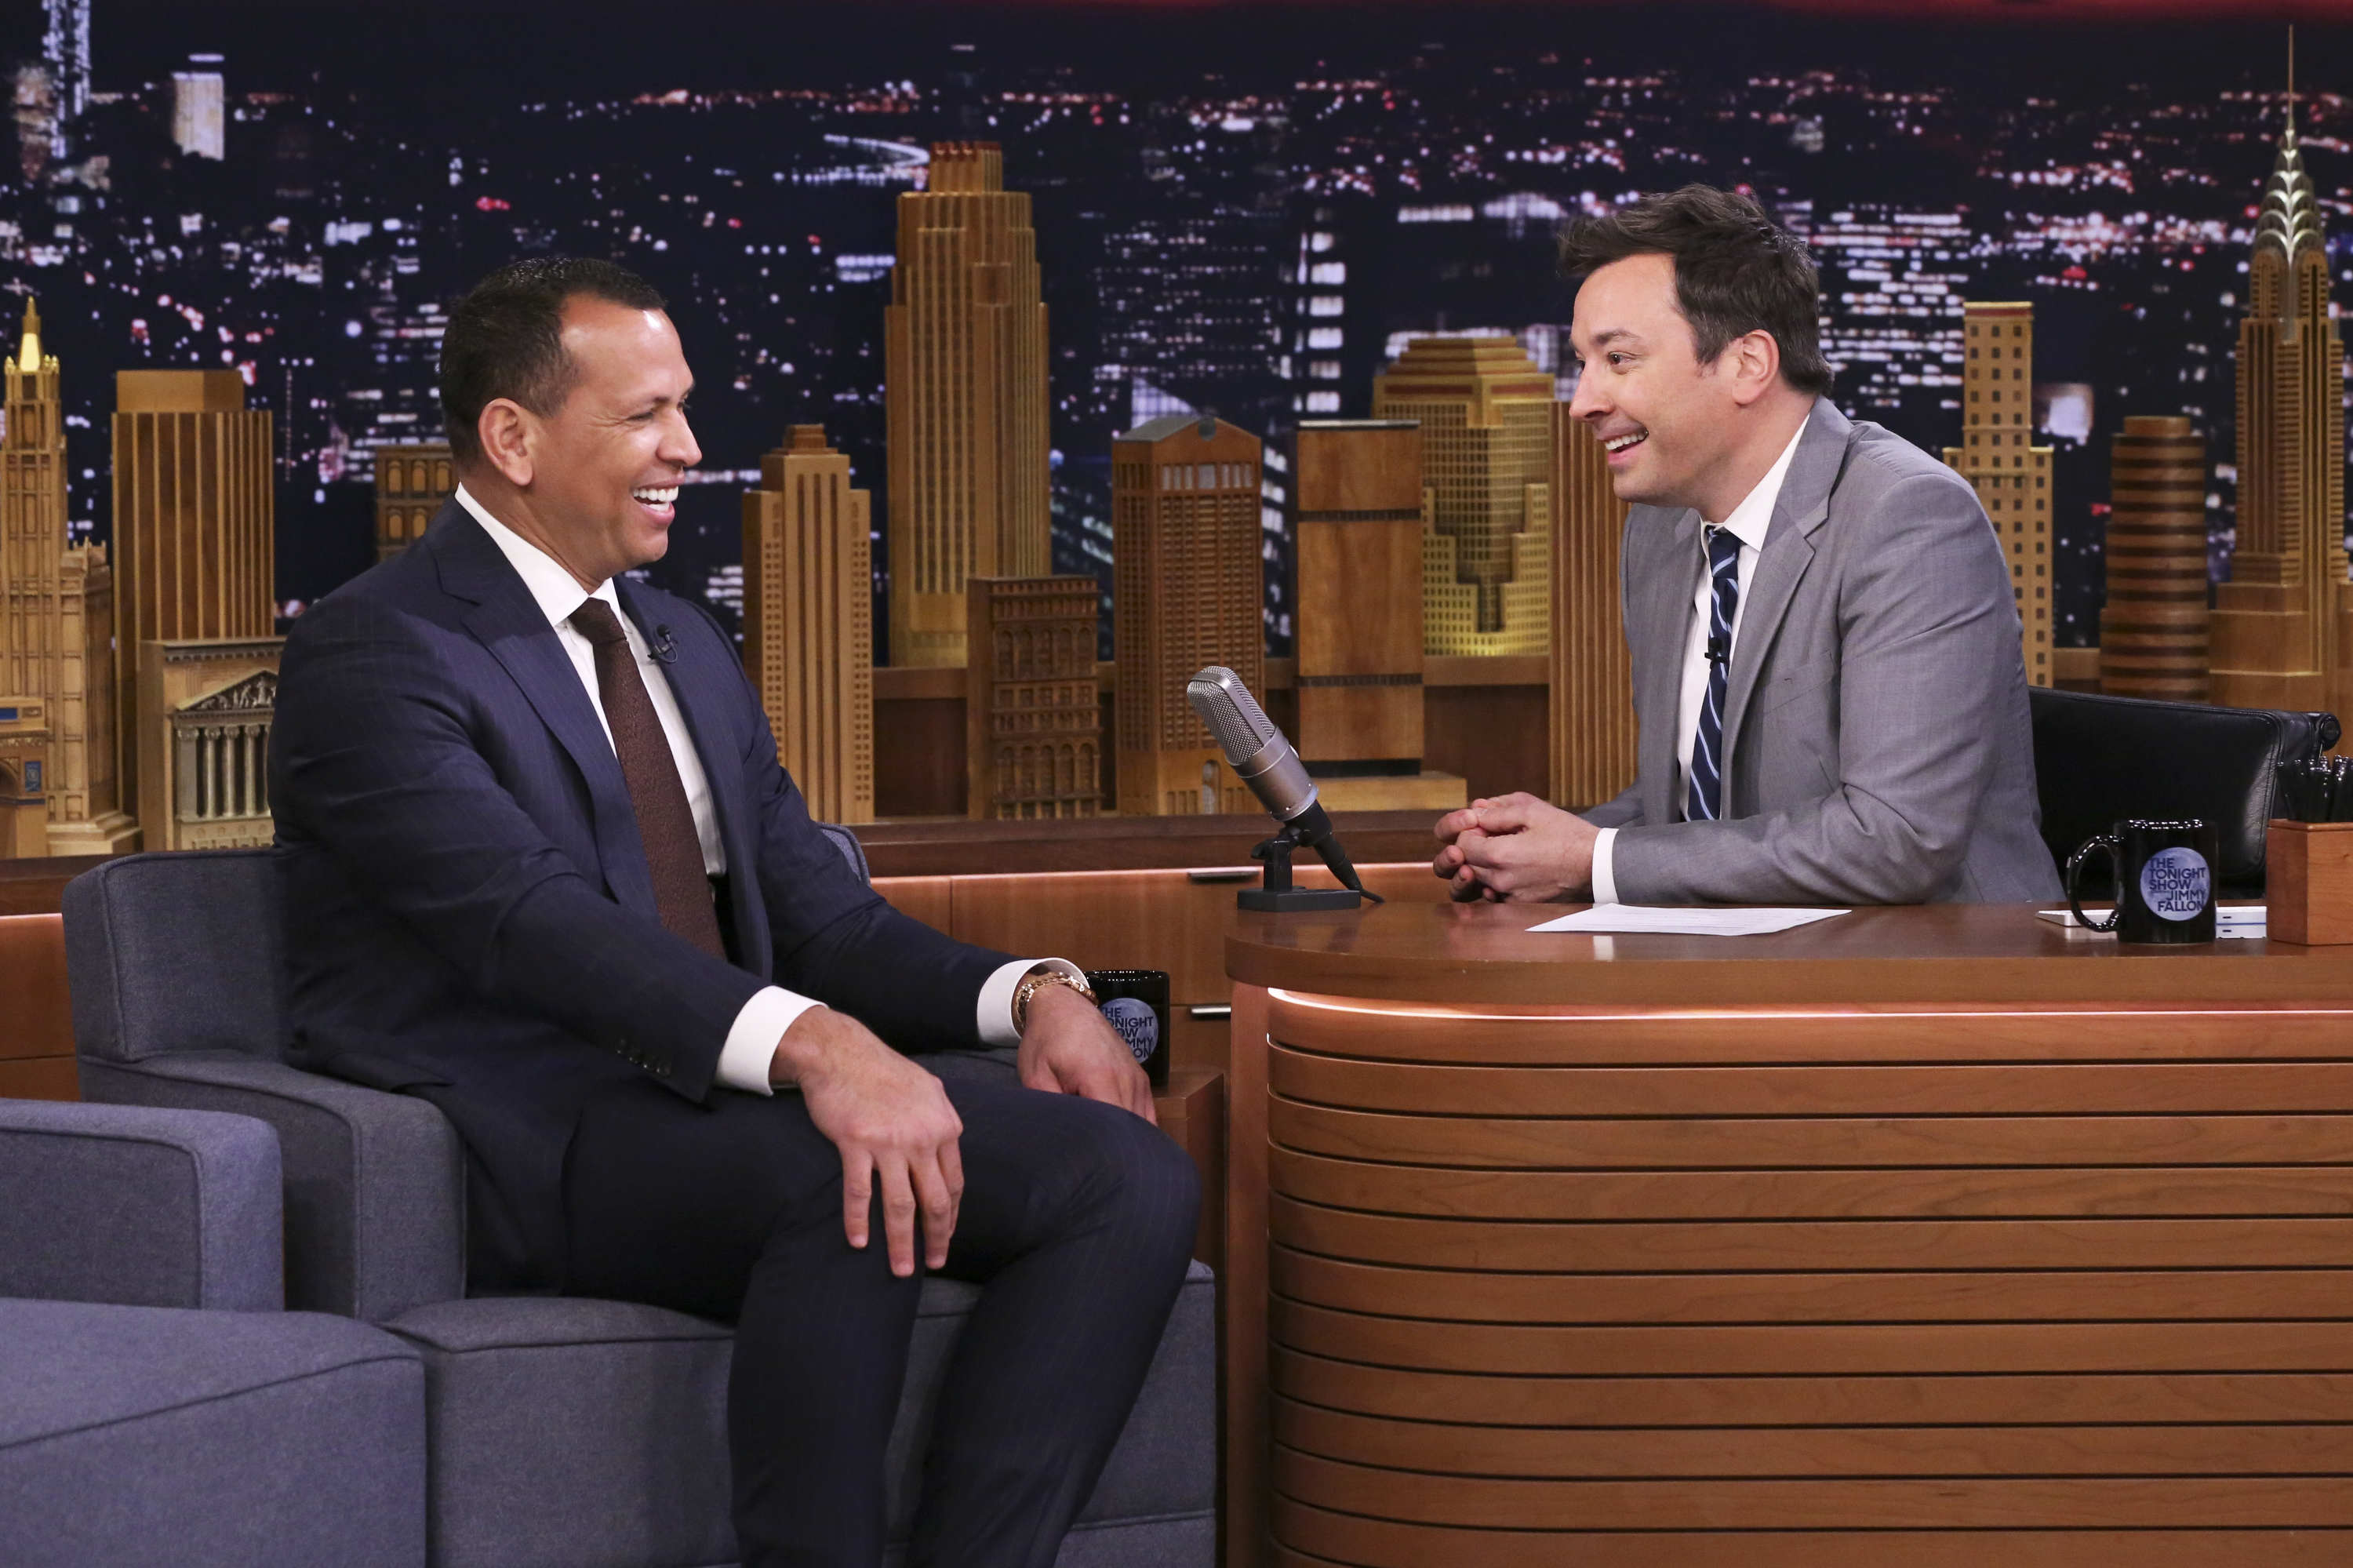 Alex Rodriguez Rehearsed His Proposal to Jennifer Lopez - THE TONIGHT SHOW STARRING JIMMY FALLON — Episode 1049 — Pictured: (l-r) Former baseball player Alex Rodriguez during an interview with host Jimmy Fallon on April 16, 2019.